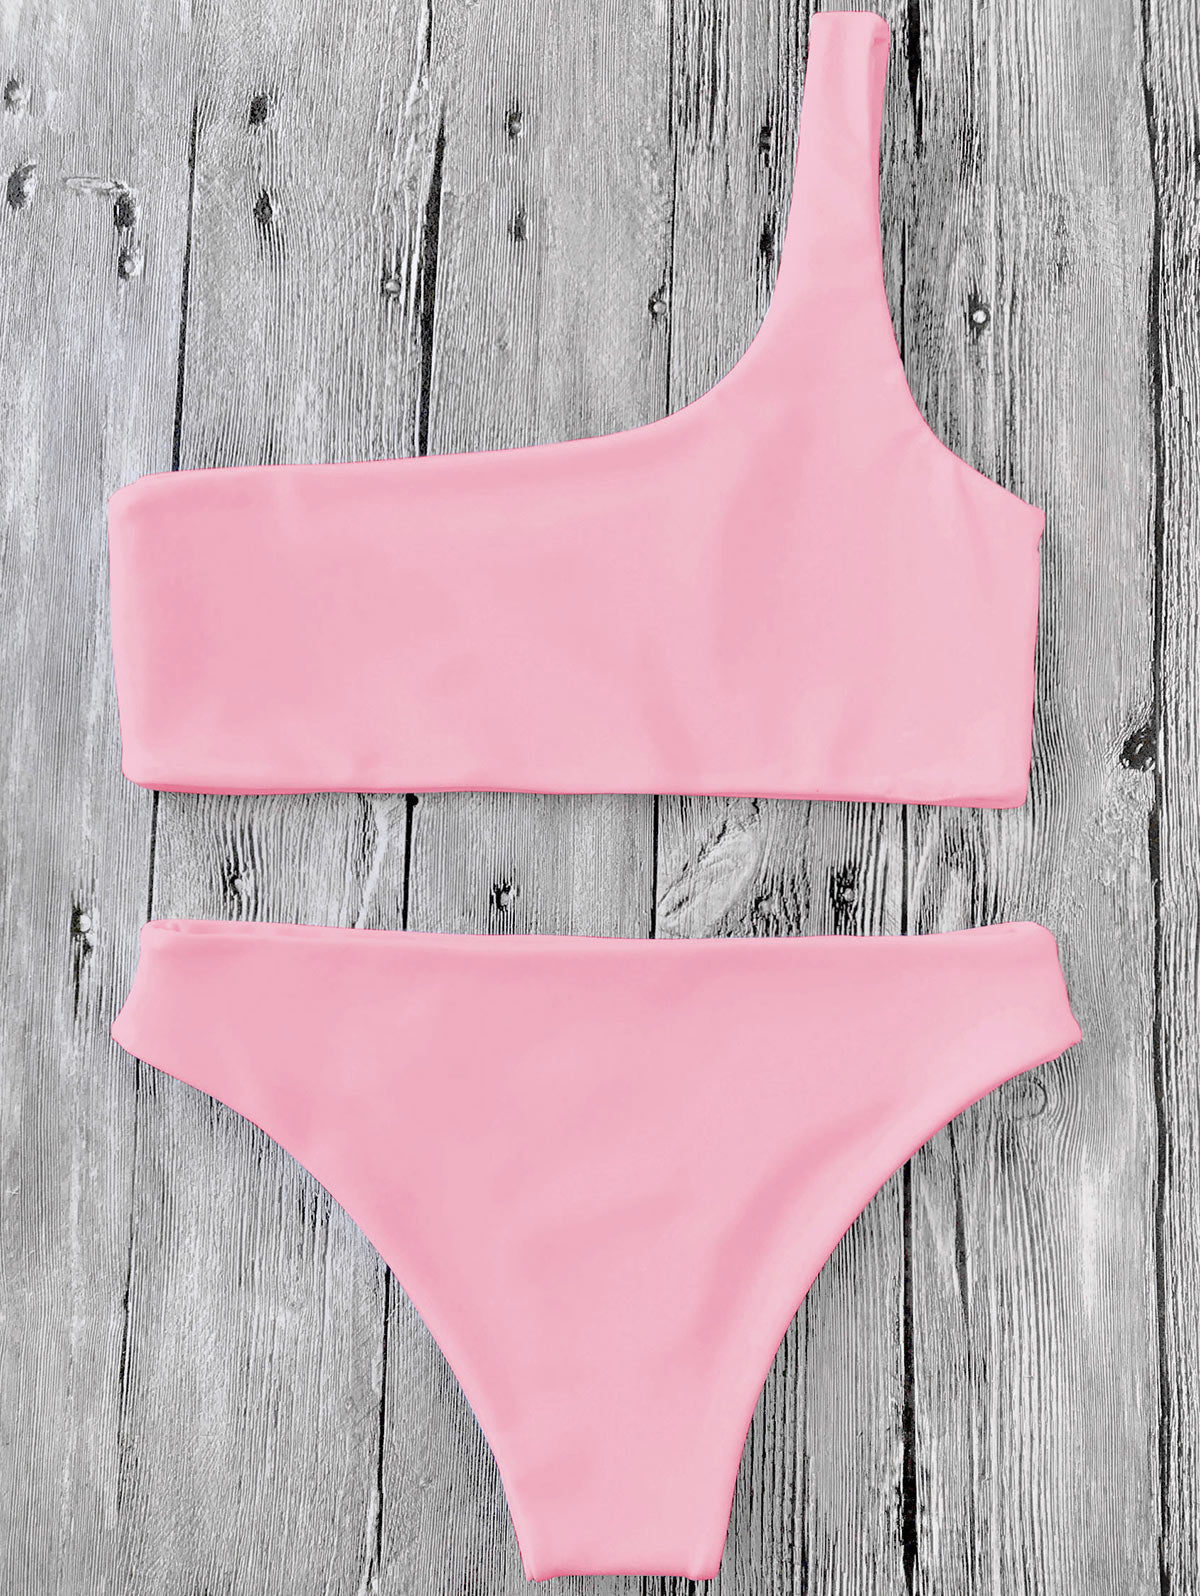 One Shoulder Bikini,Bandeau Bikinis,YOUR WISH LIST